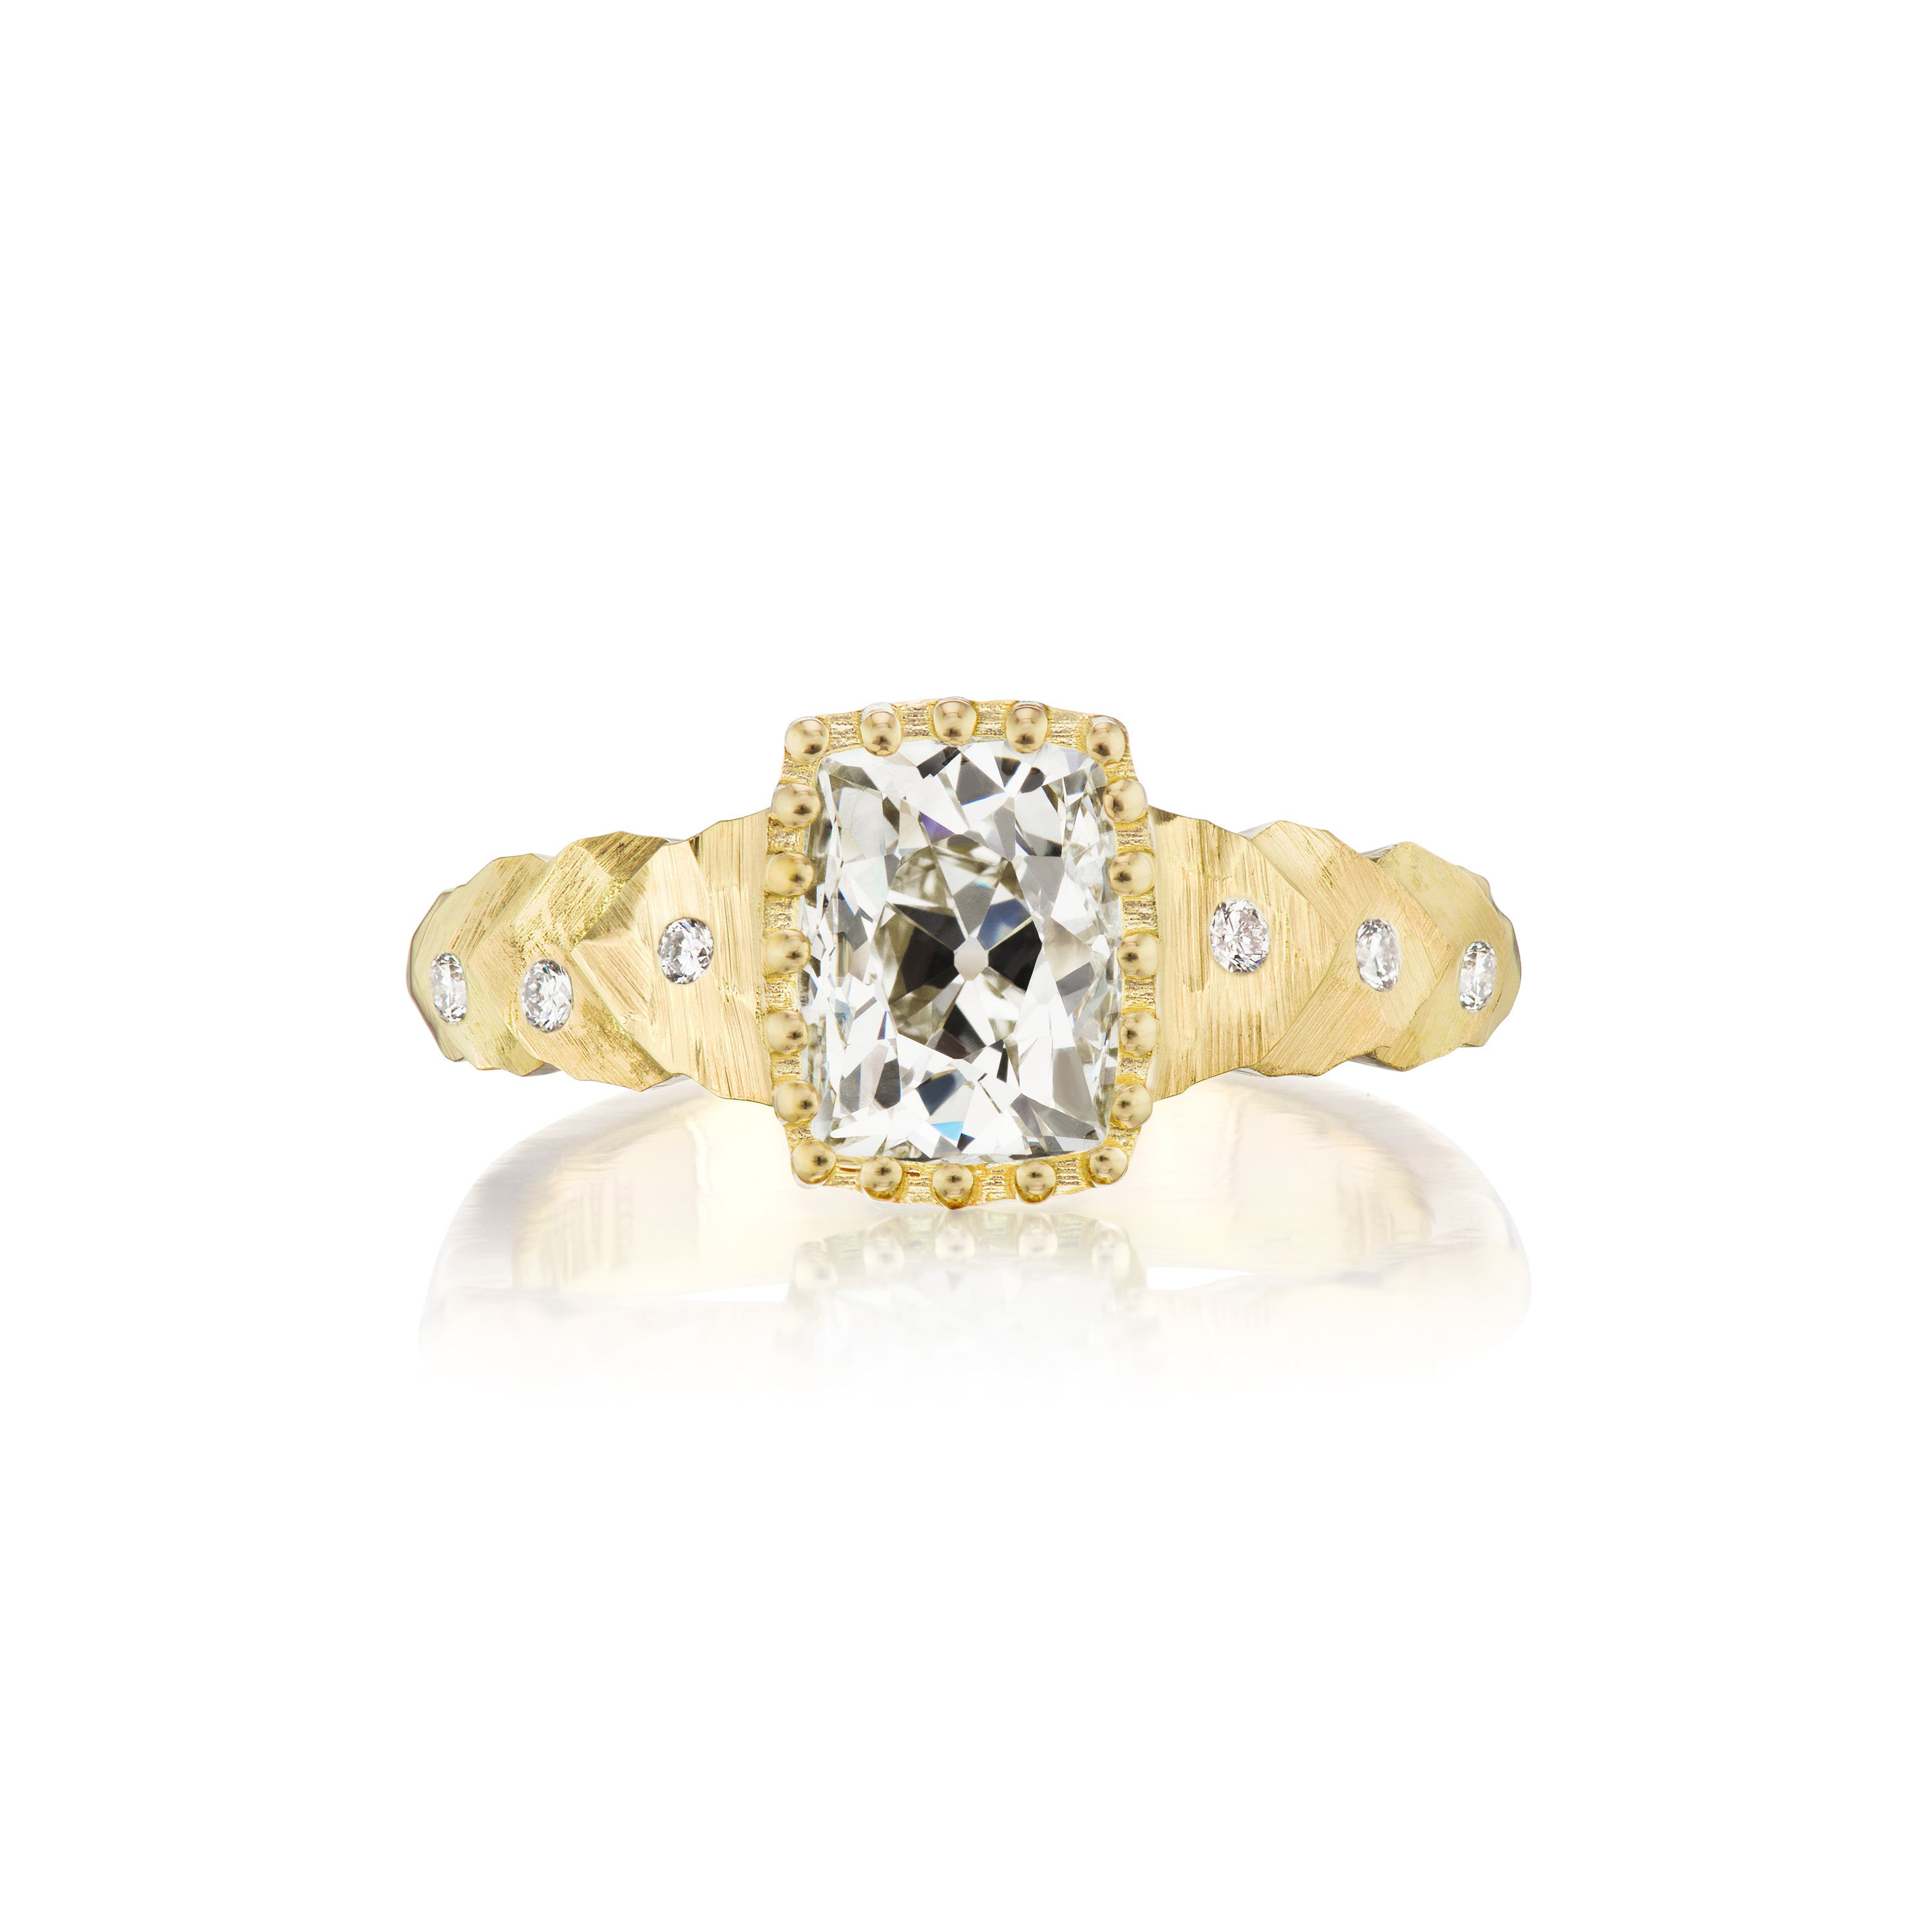 Petal Tiers Ring with Old Mine Elongated Cushion Cut Diamond